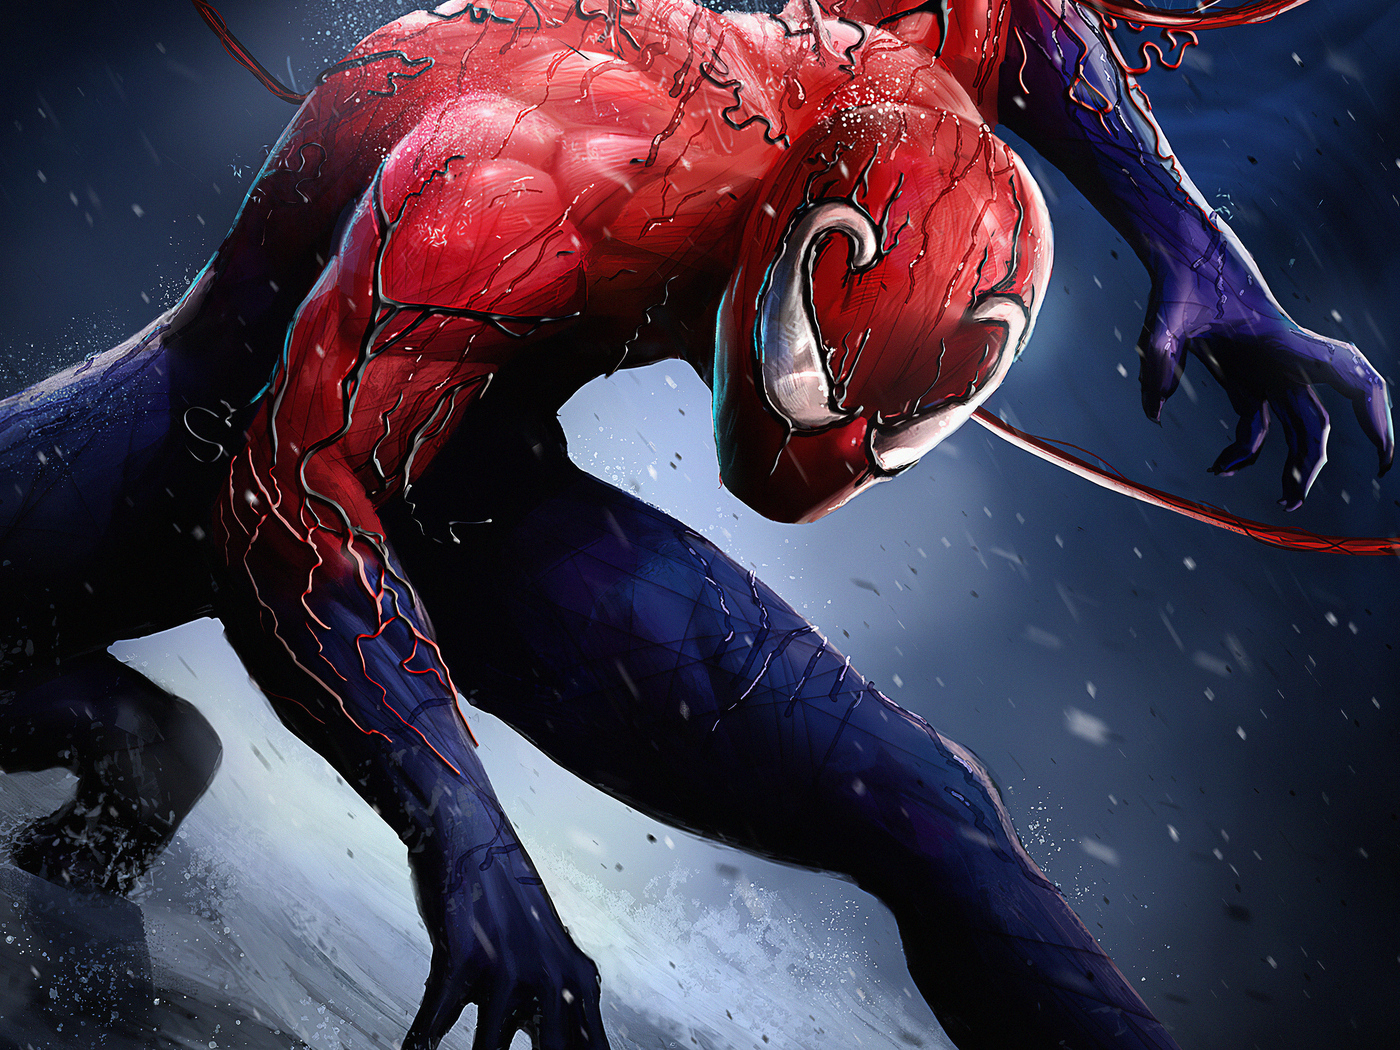 spiderman-toxin-dark-hearts-4k-dj.jpg